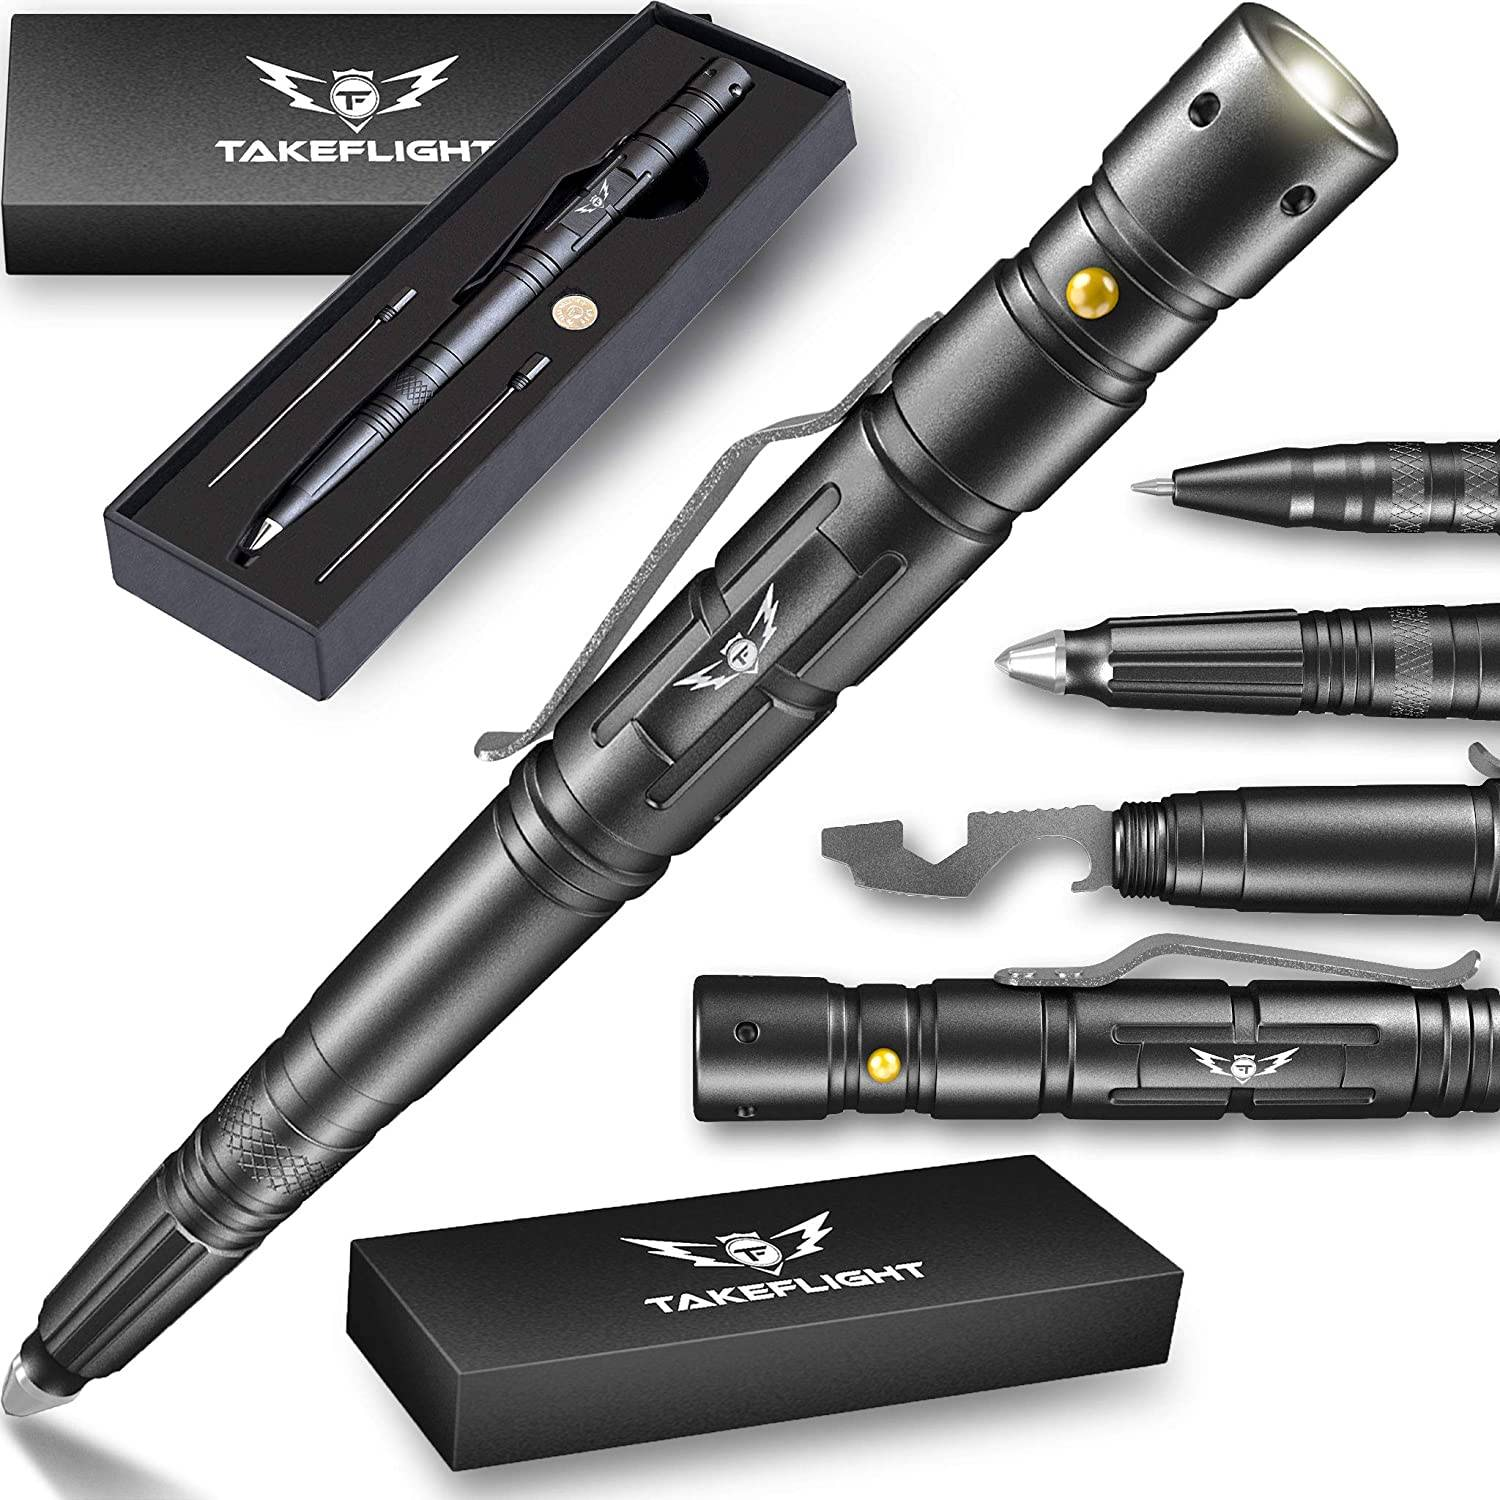 All-in-one tactical pen